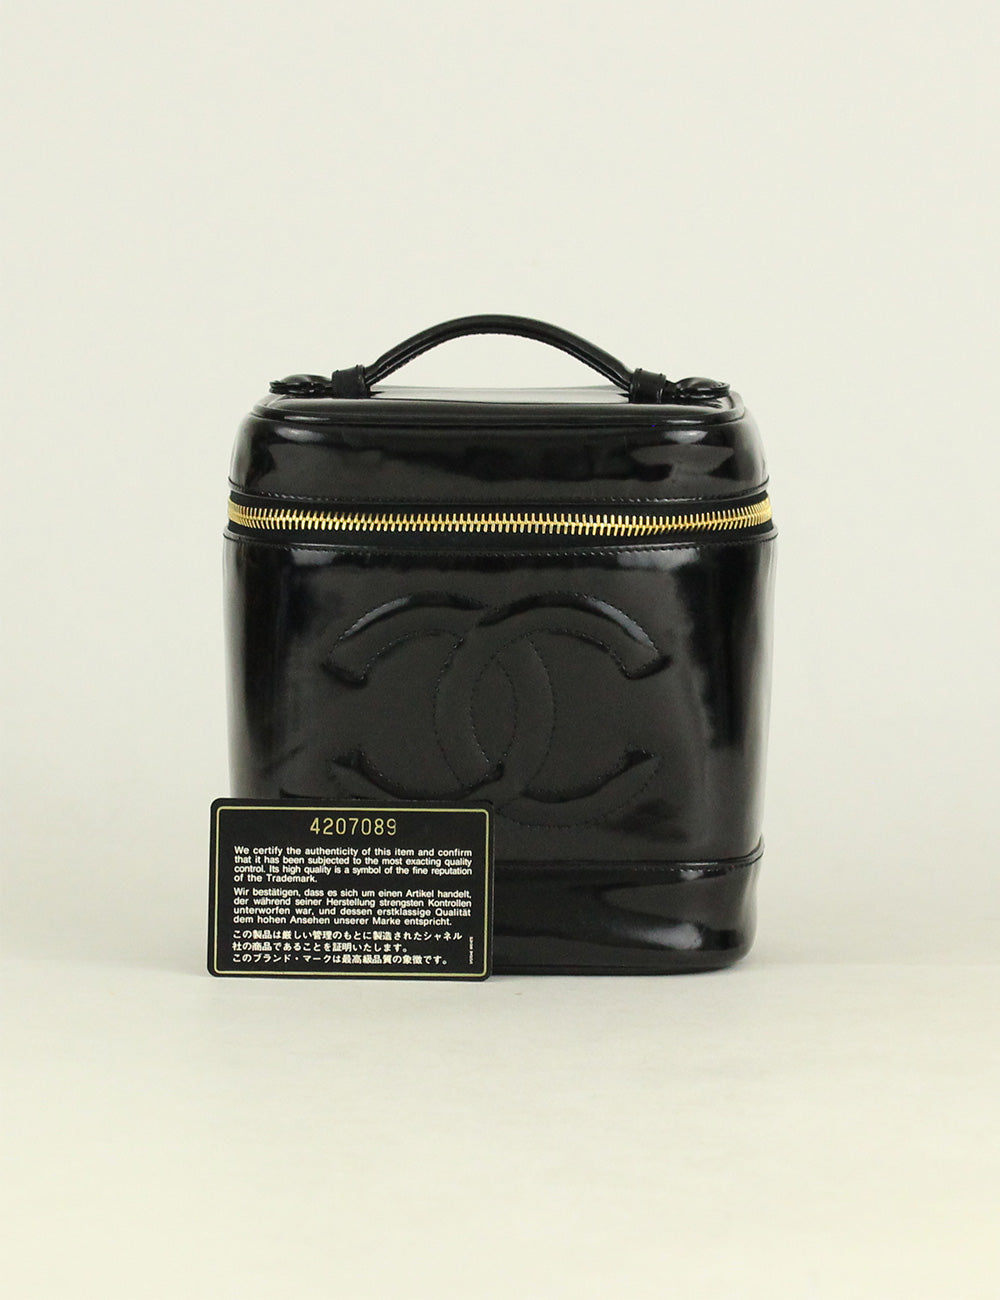 CHANEL <br> Vintage Vanity Case Bag